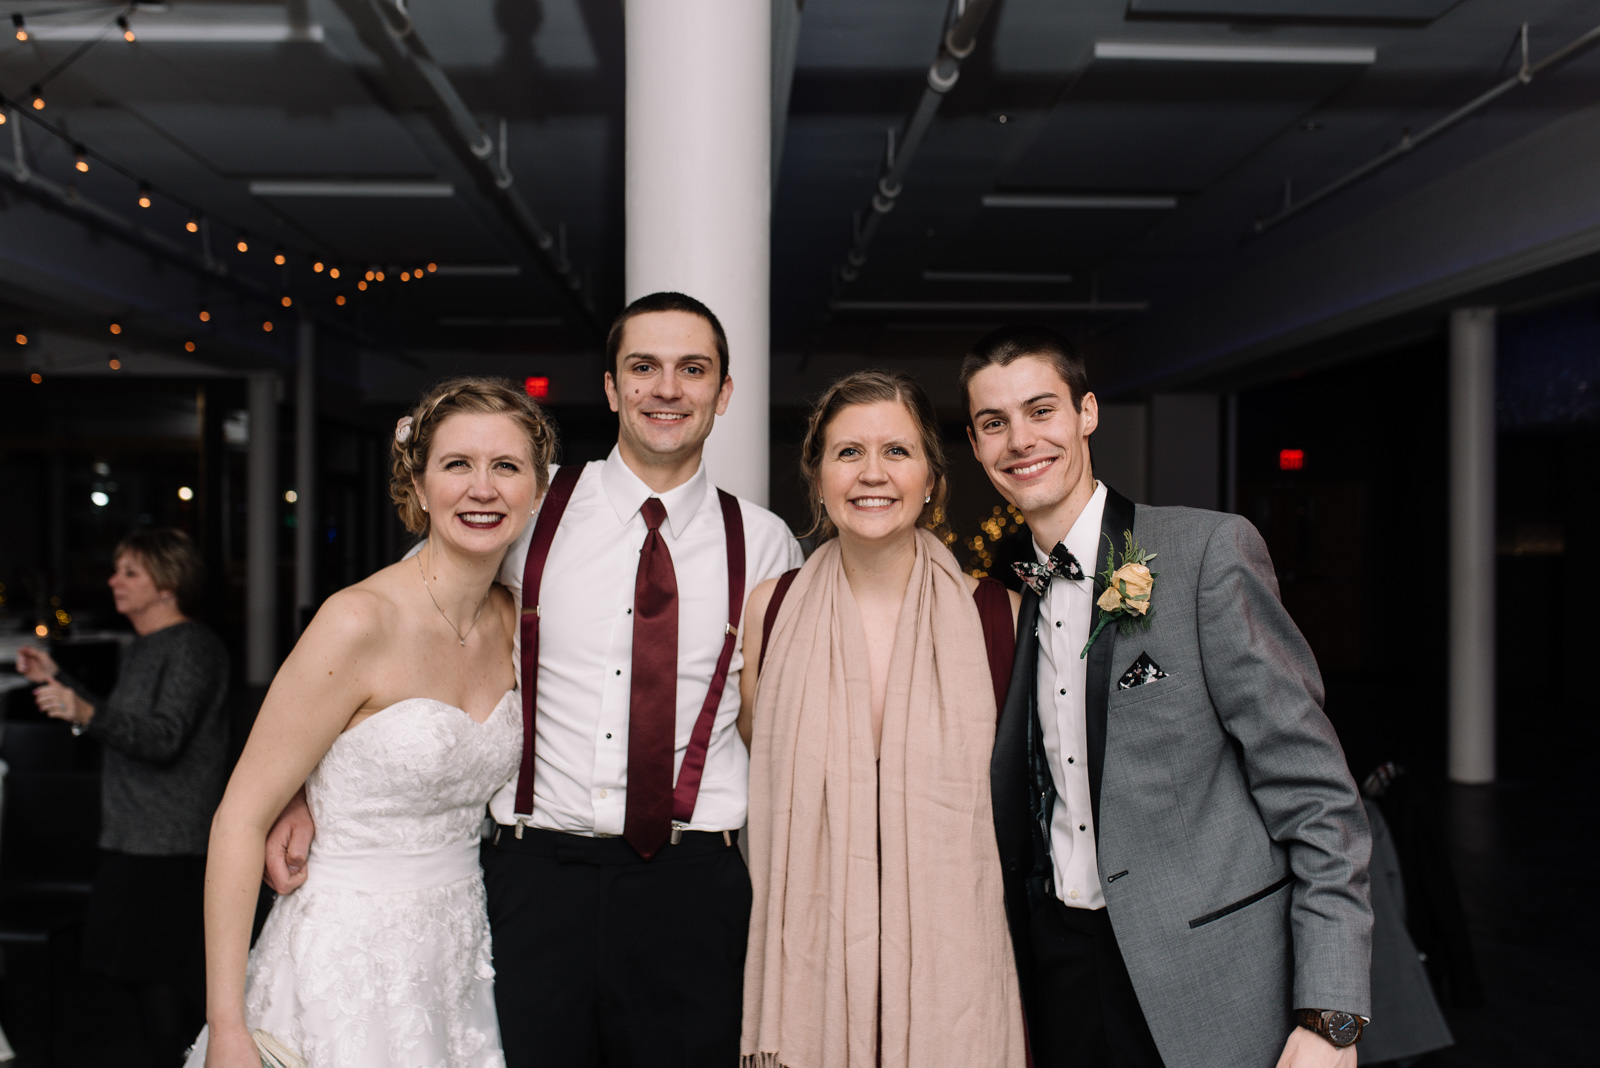 bride and groom with best man and maid of honor eastbank wedding venue